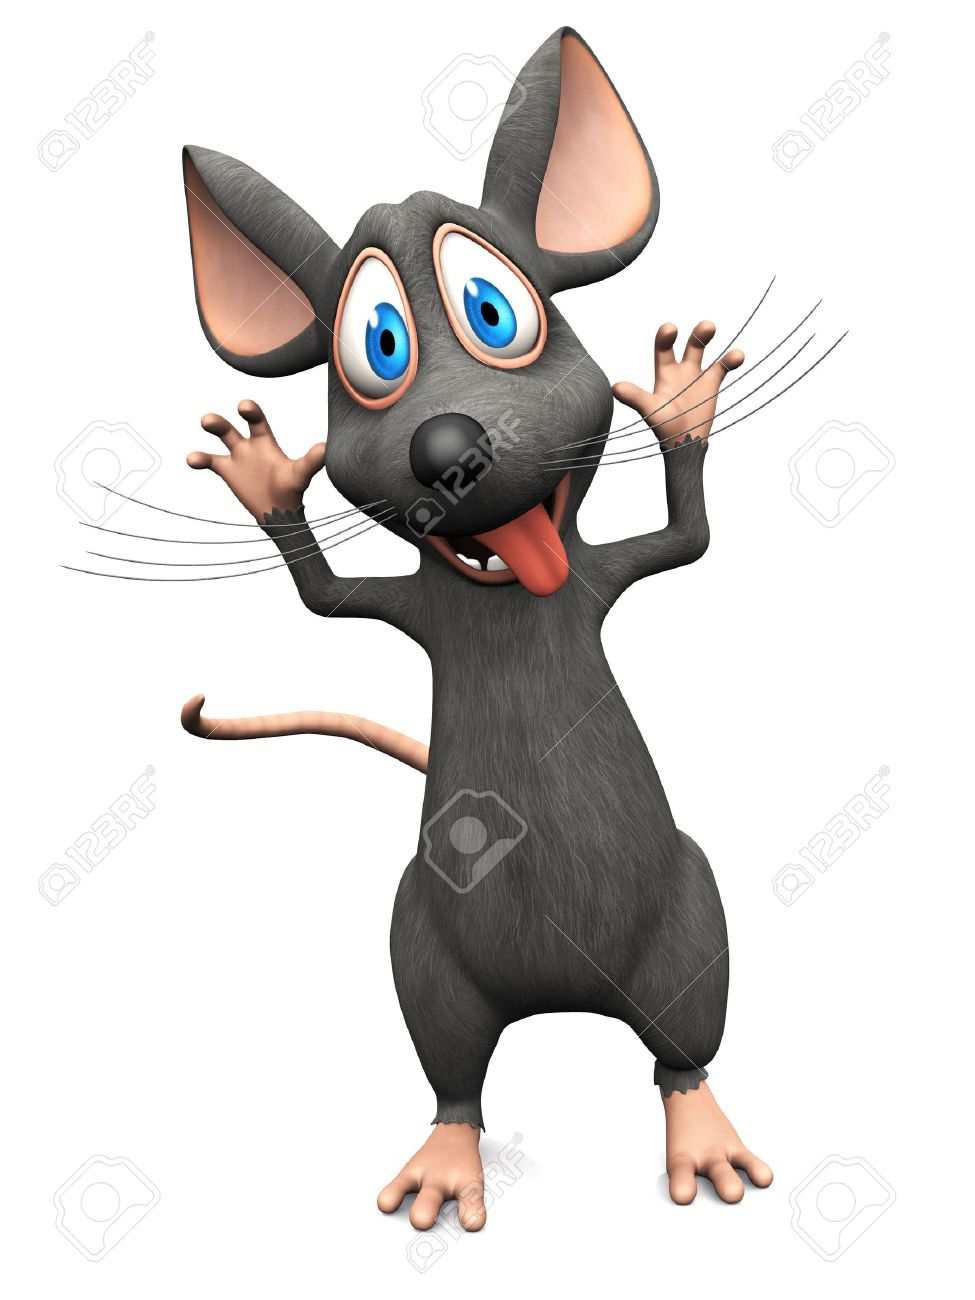 A cute smiling cartoon mouse sticking his tongue out and doing a silly face. White background. Stock Photo - 36053598